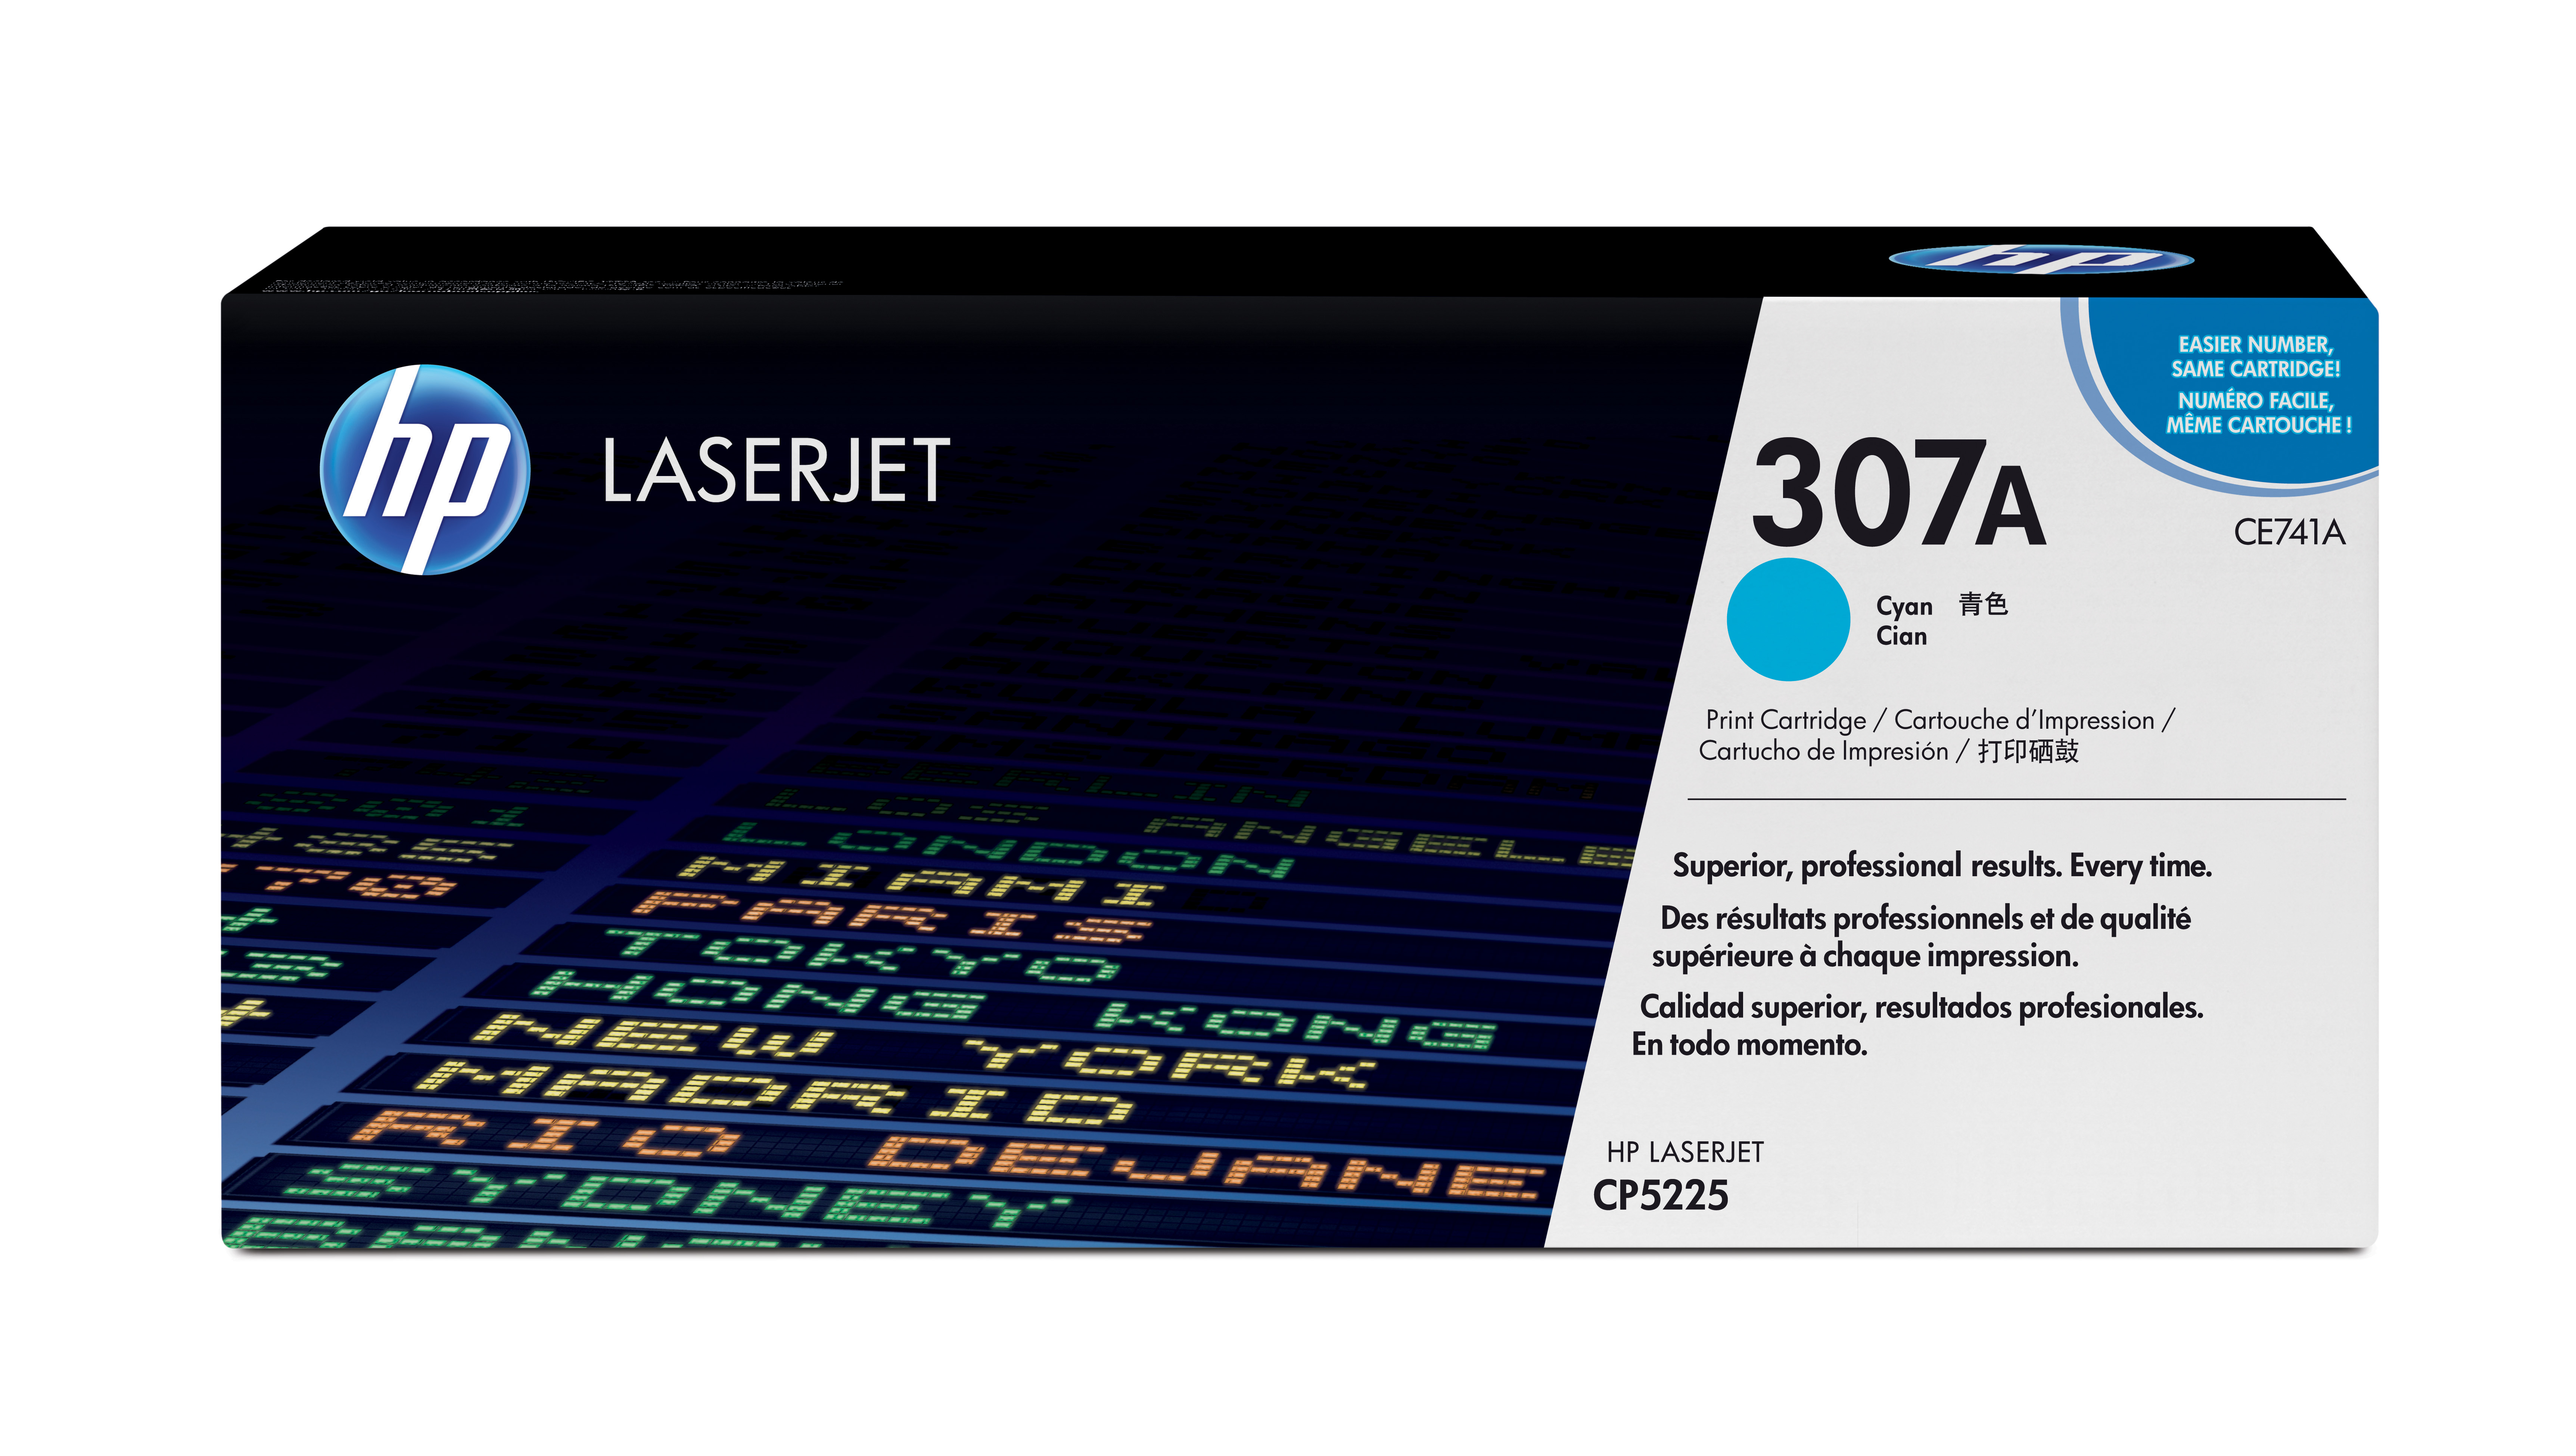 HP 307A Cyan Toner Cartridge CE741A